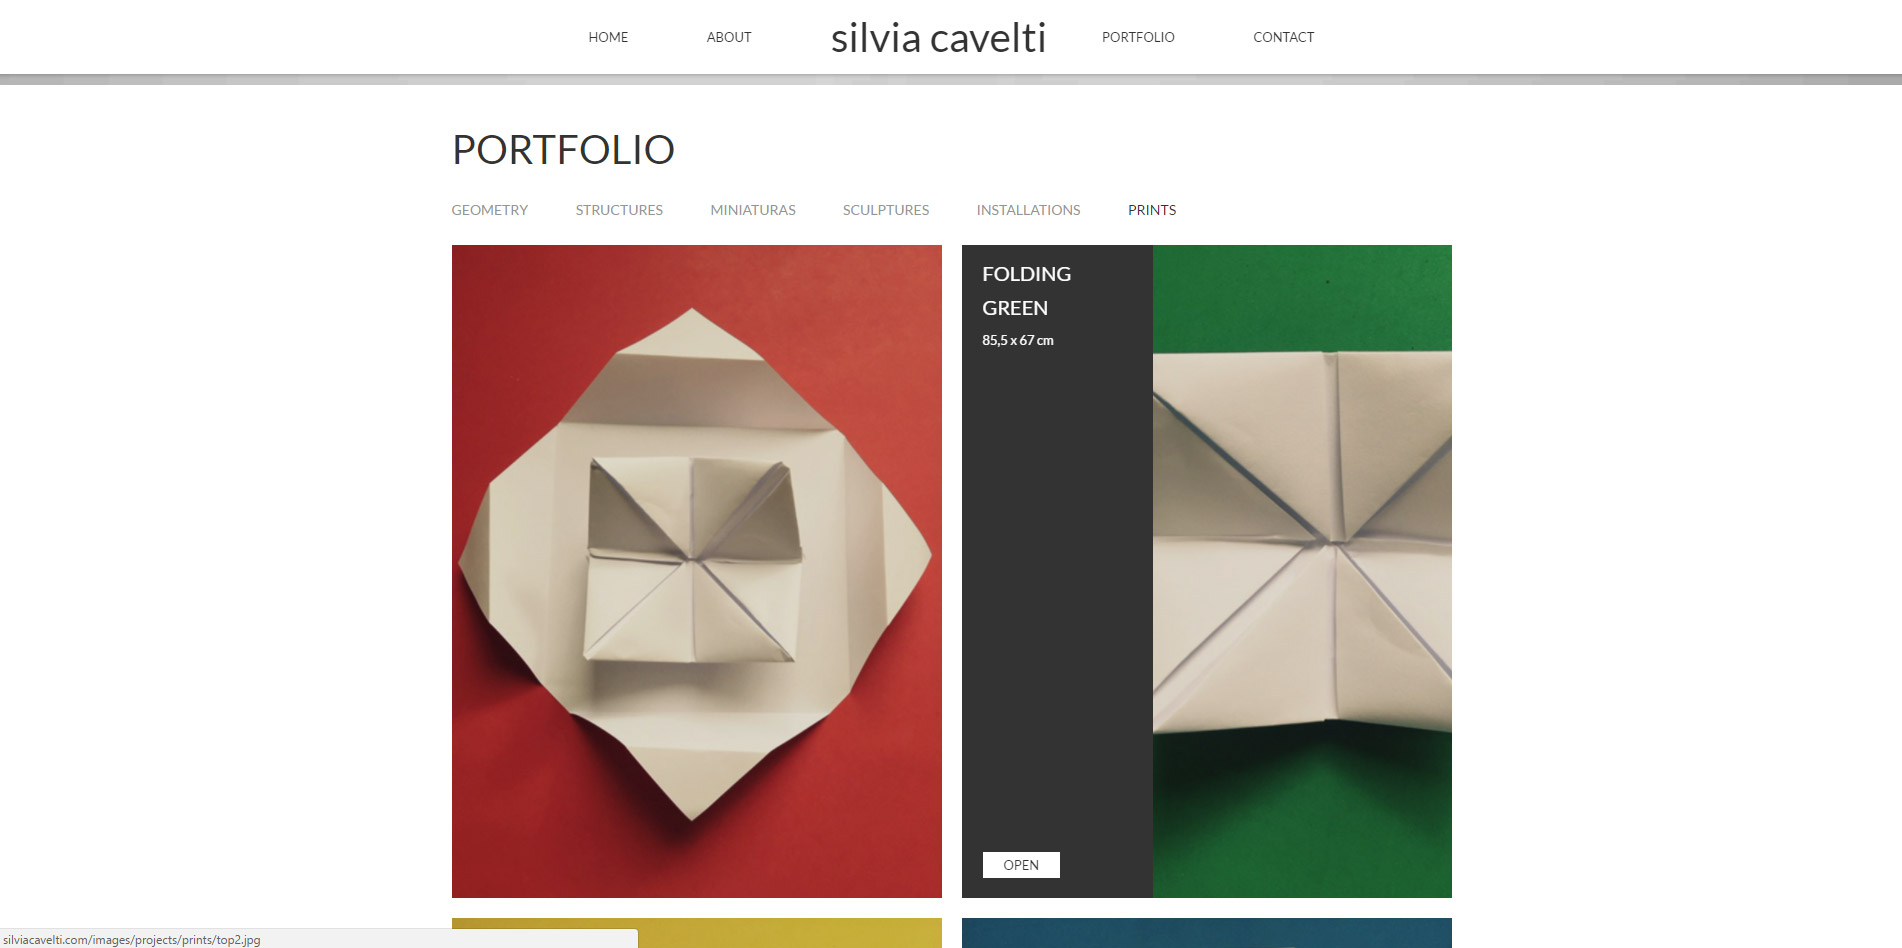 single page responsive web design for Algarve based artist Silvia Cavelti